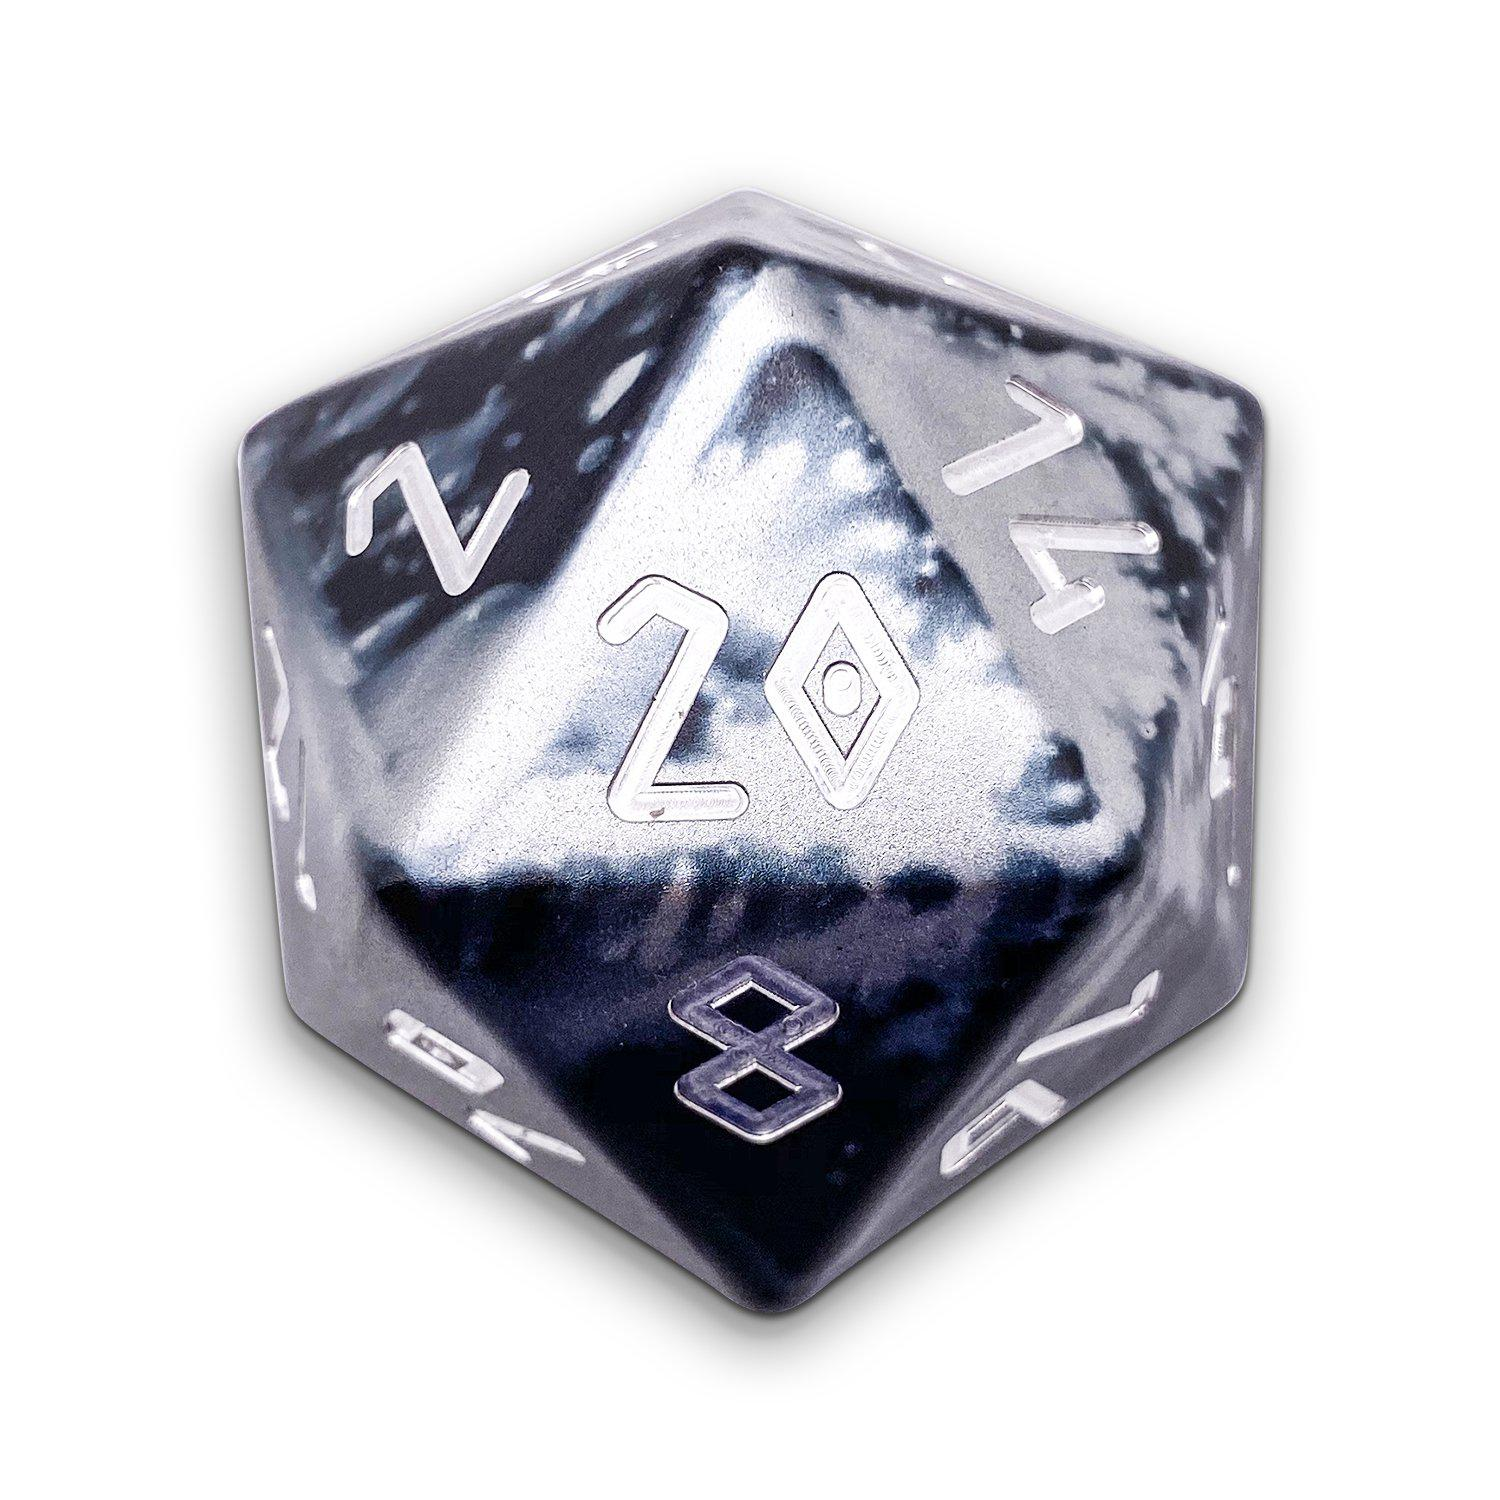 Mummy Lord - Wondrous Boulder® 55mm D20 6063 Aircraft Grade Aluminum Metal Die